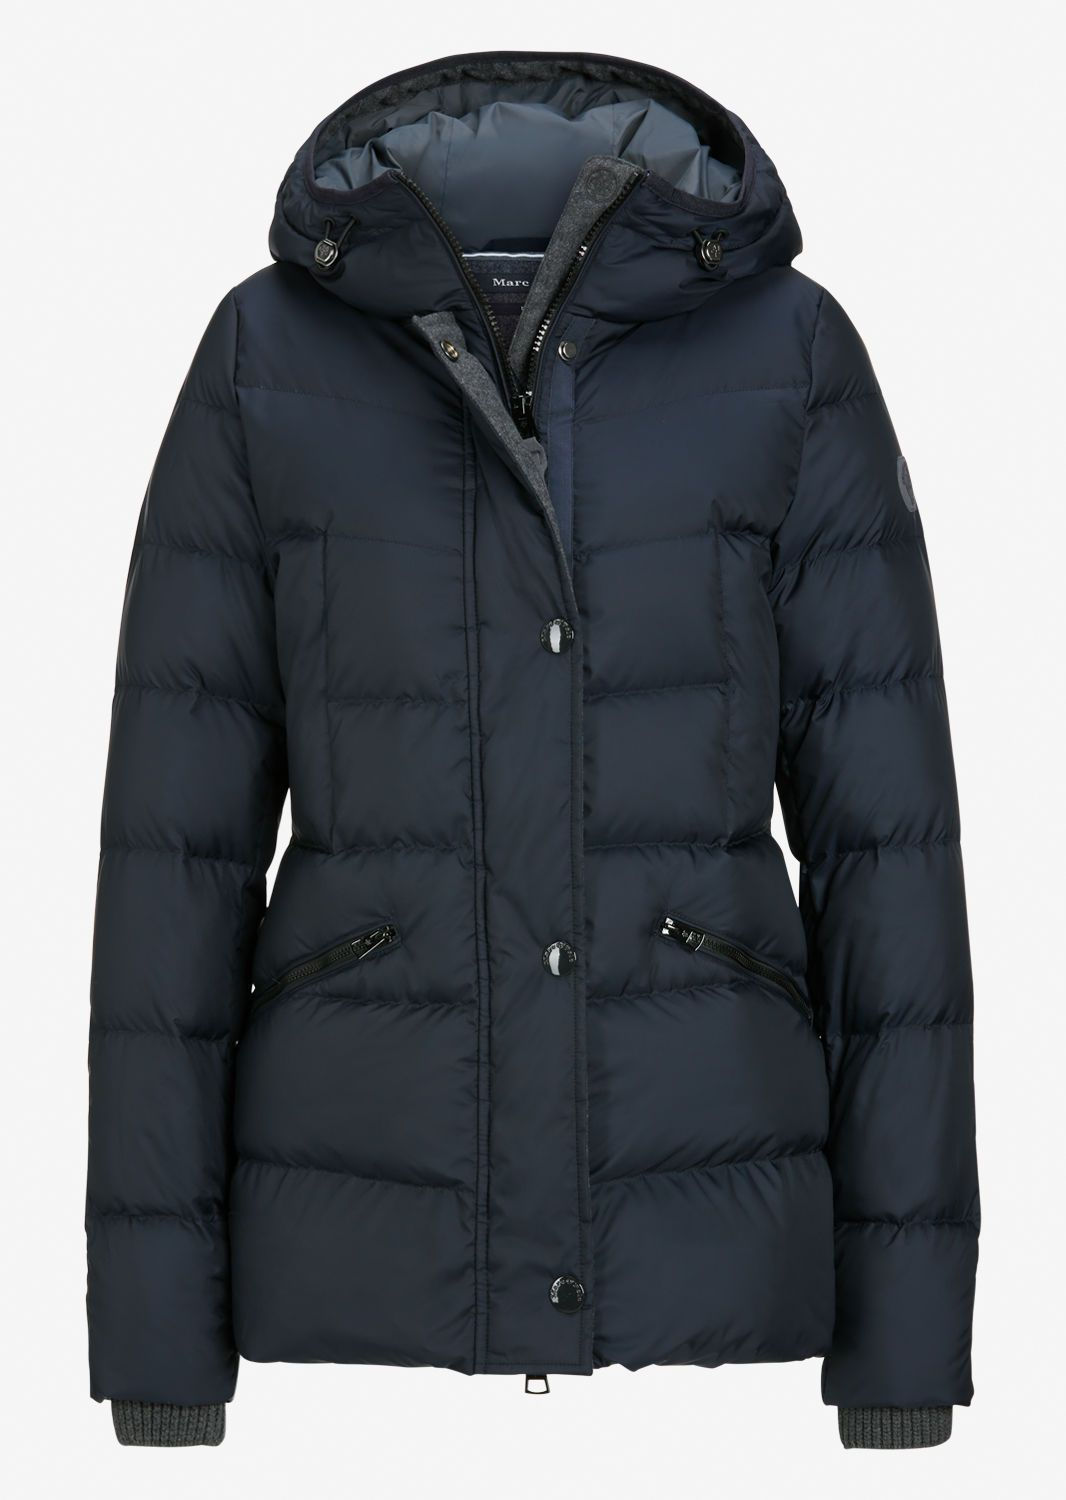 Marc O Polo Women Clothing Jackets X2f Coats Quilted Jacket With Down Feather Lining Jackets Winter Wear Quilted Jacket [ 1500 x 1066 Pixel ]